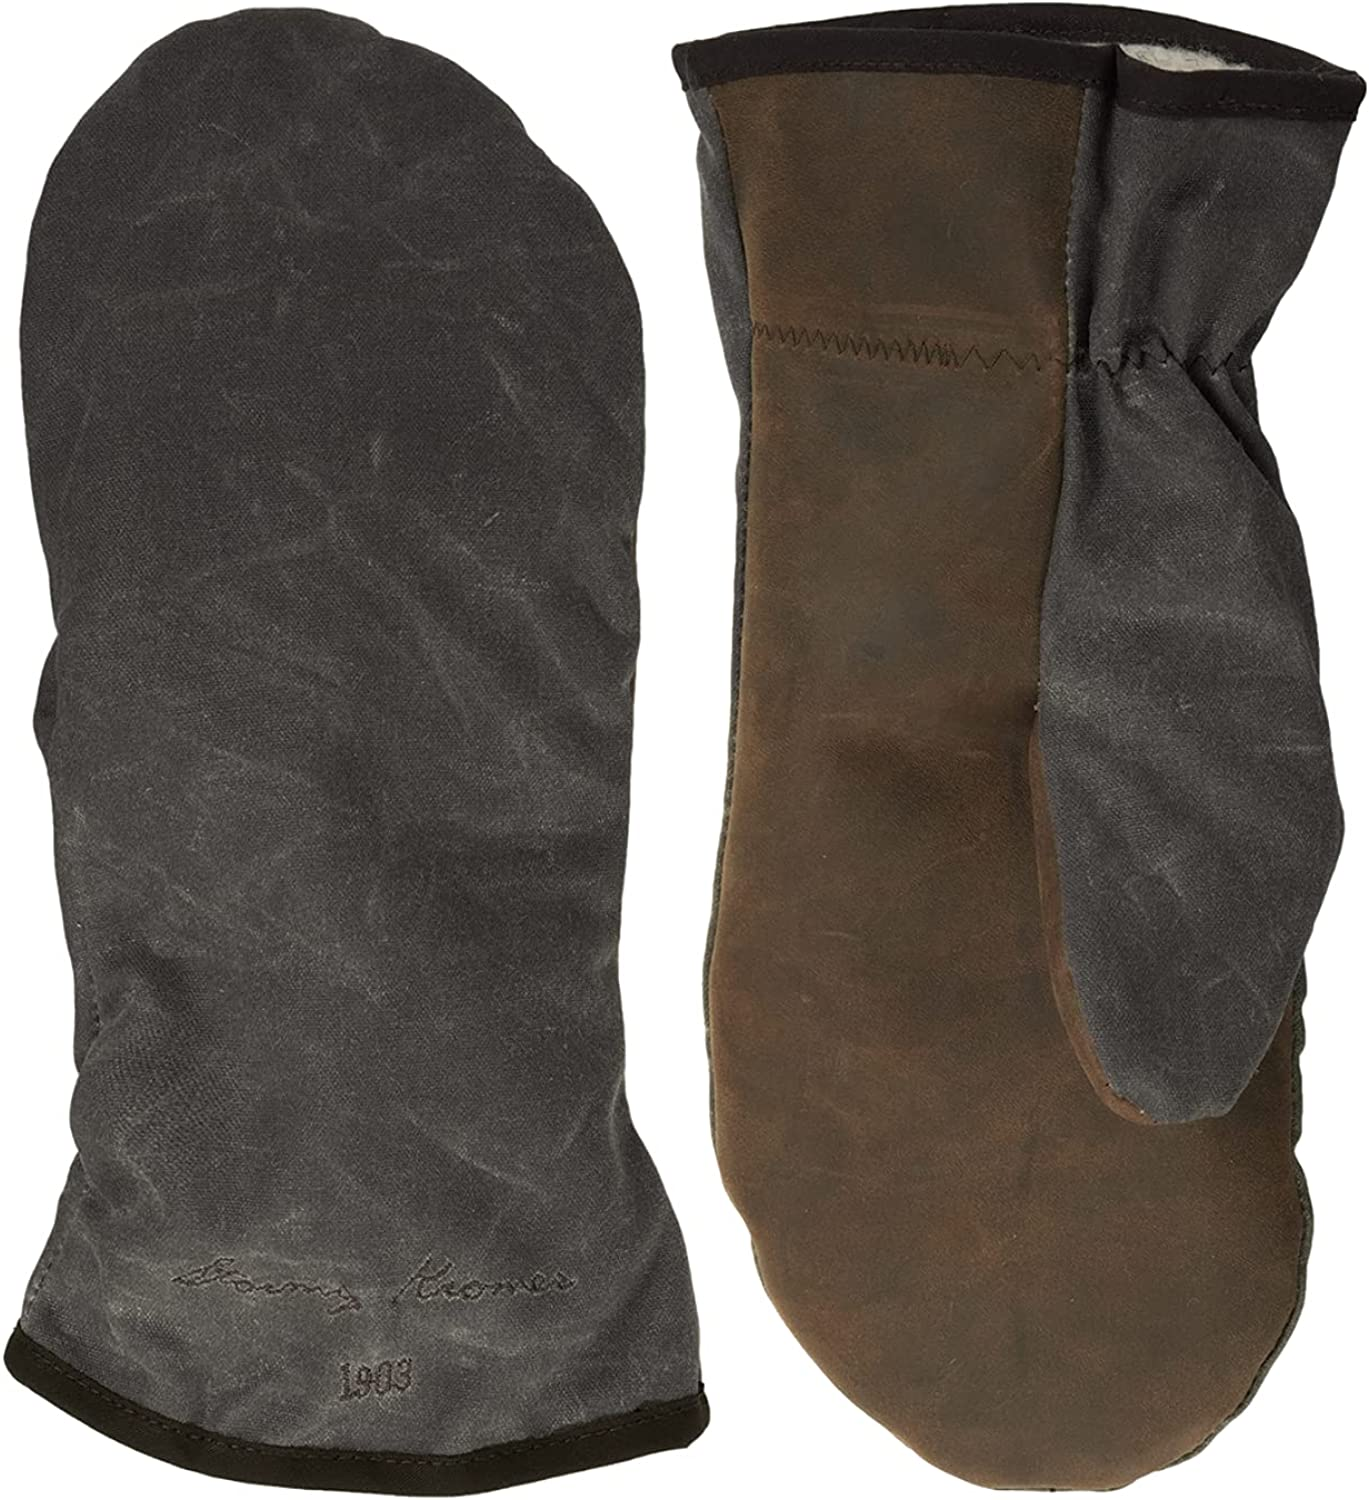 Stormy Kromer Waxed Tough Mitts - Water-Resistant, Goatskin Palm, Warm, Winter Mittens